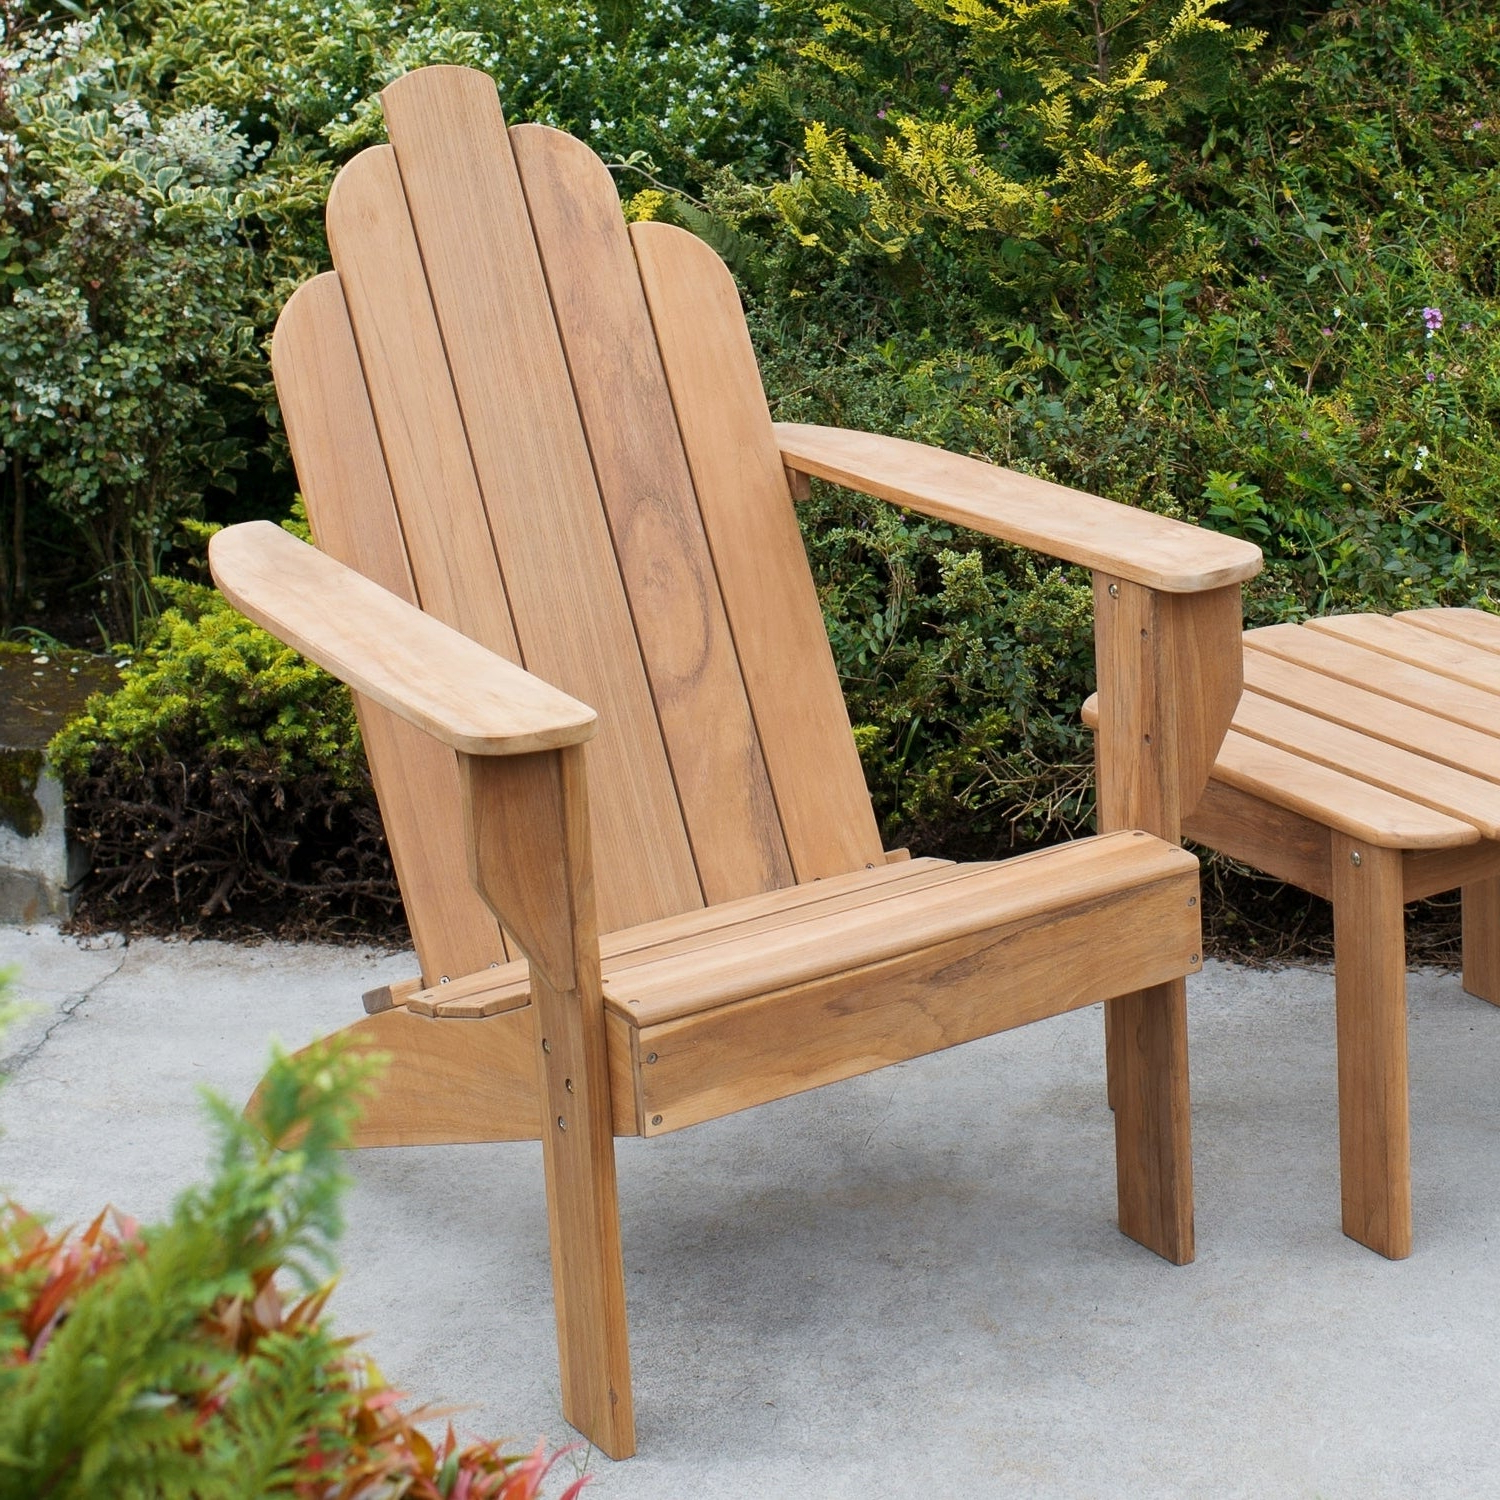 Latest Cambridge Casual Sherwood Teak Chaise Lounges Pertaining To Cambridge Casual Sherwood Teak Adirondack Chair (View 11 of 25)